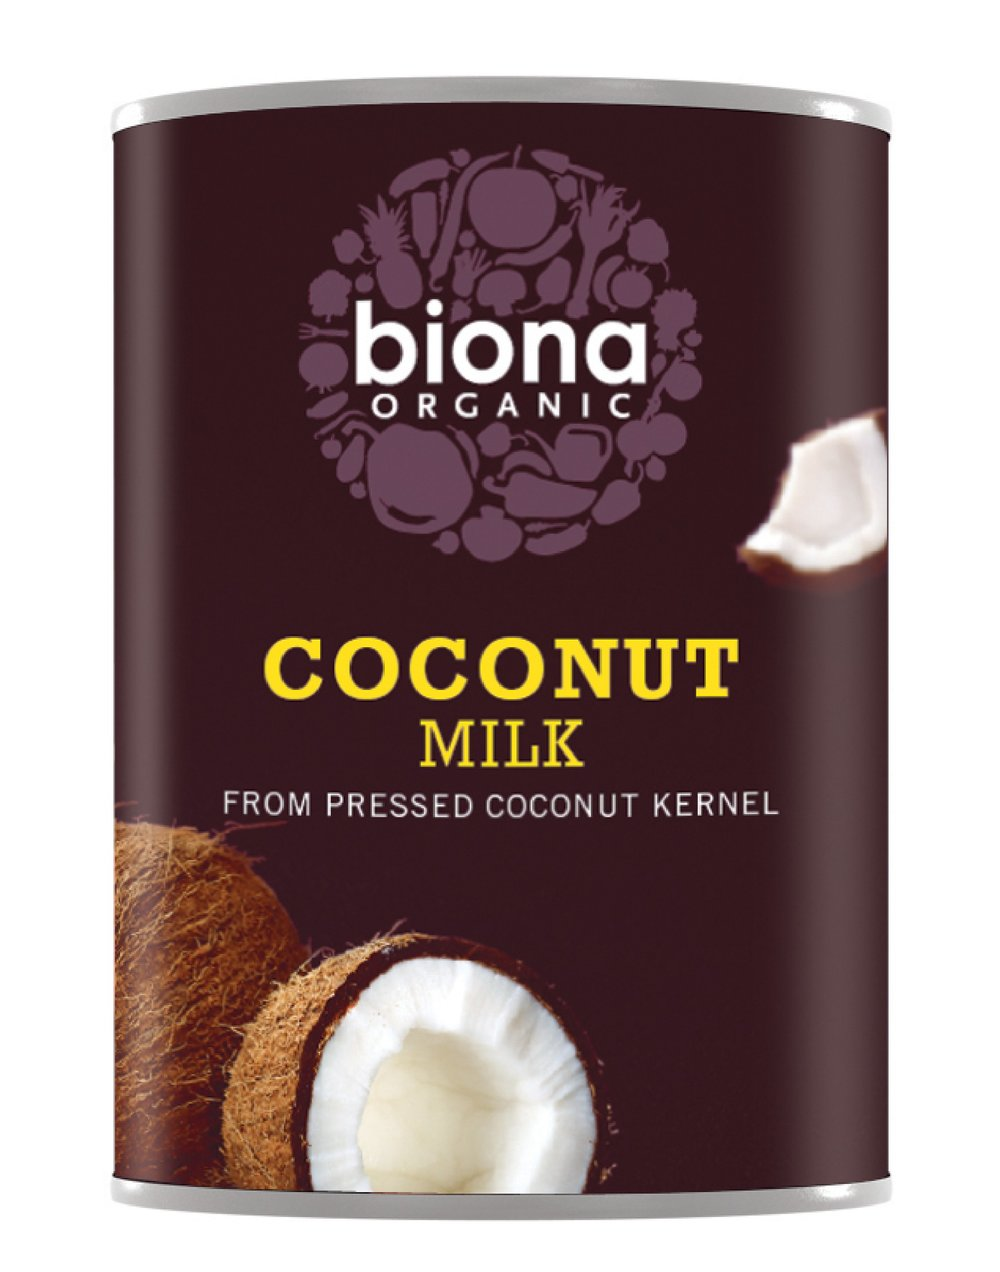 Biona Coconut Milk.JPG